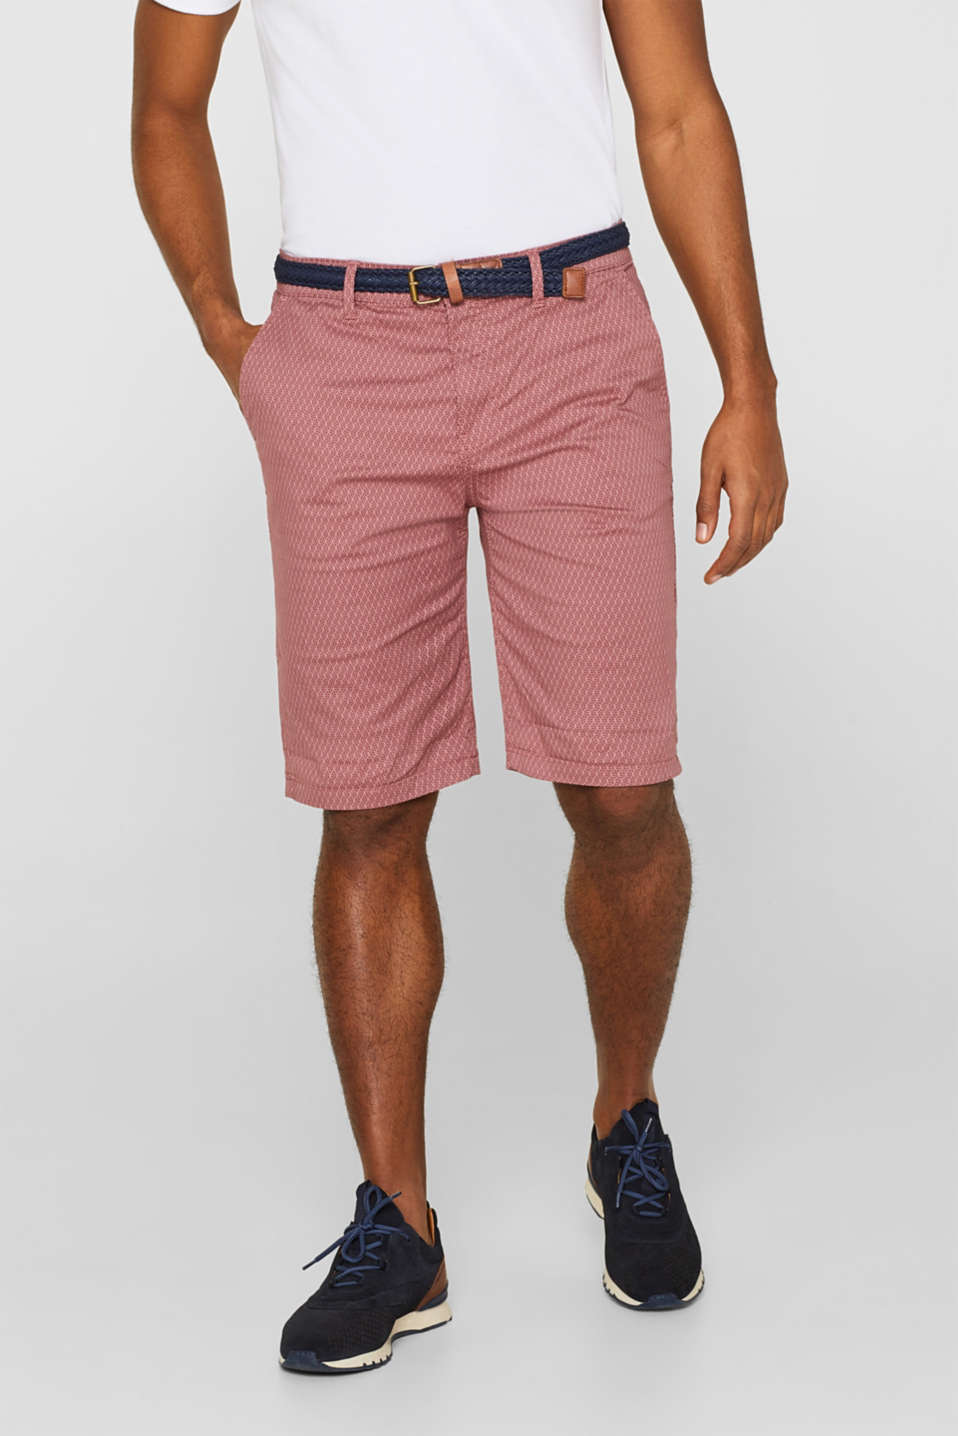 Esprit - Printed Bermudas shorts made of stretch cotton